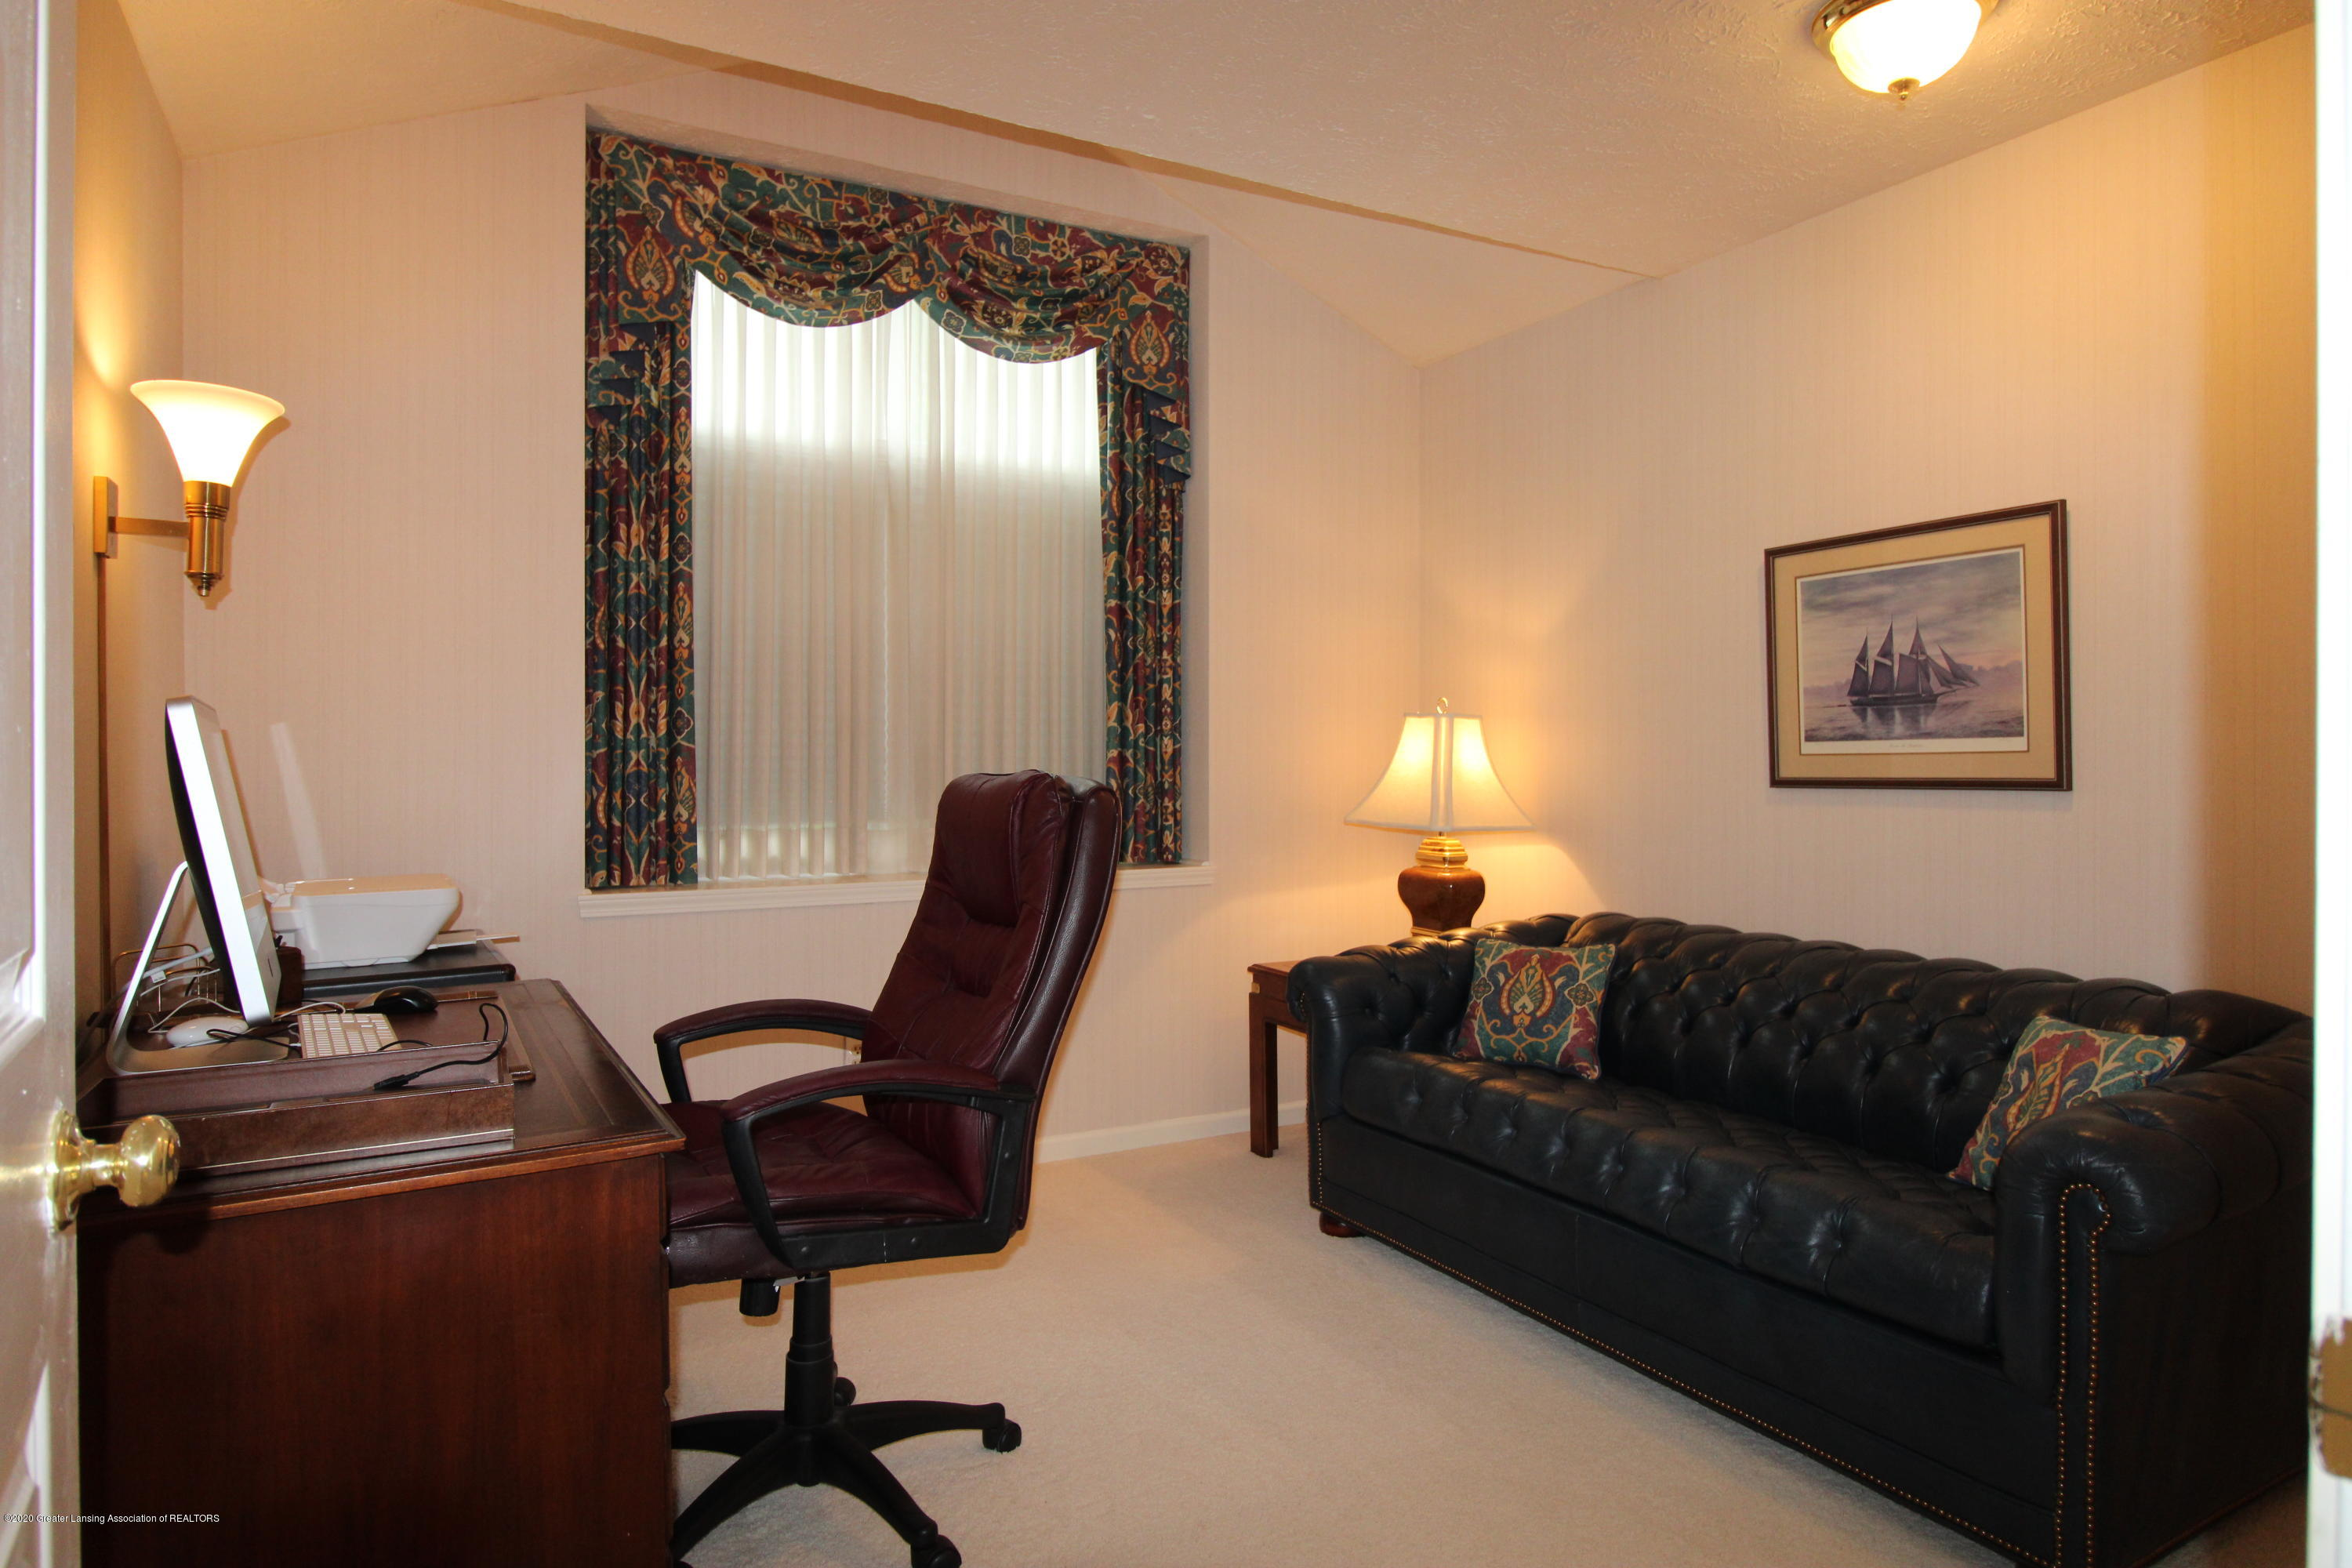 808 Powderhorn - 9. BR 4 used as Home Office - 12